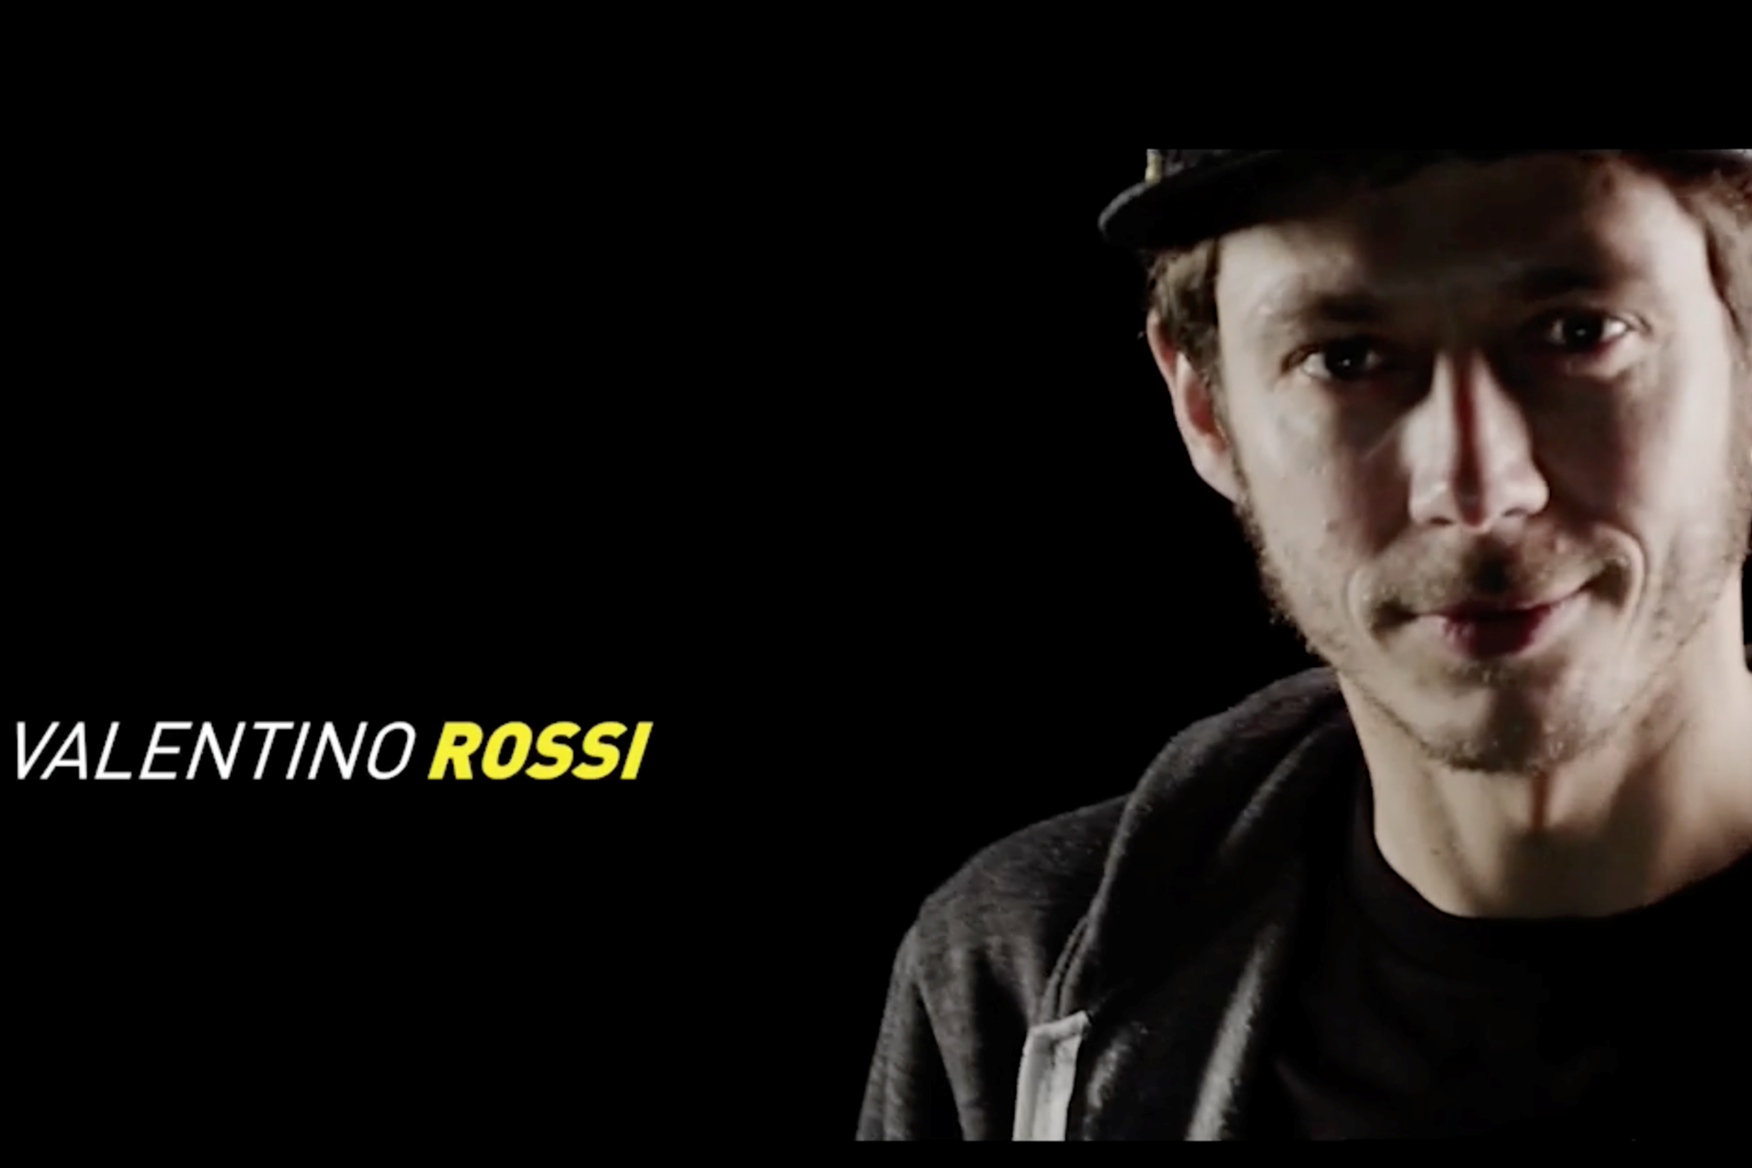 Video: Valentino Rossi - The Doctor series trailer Valentino Rossi The Doctor